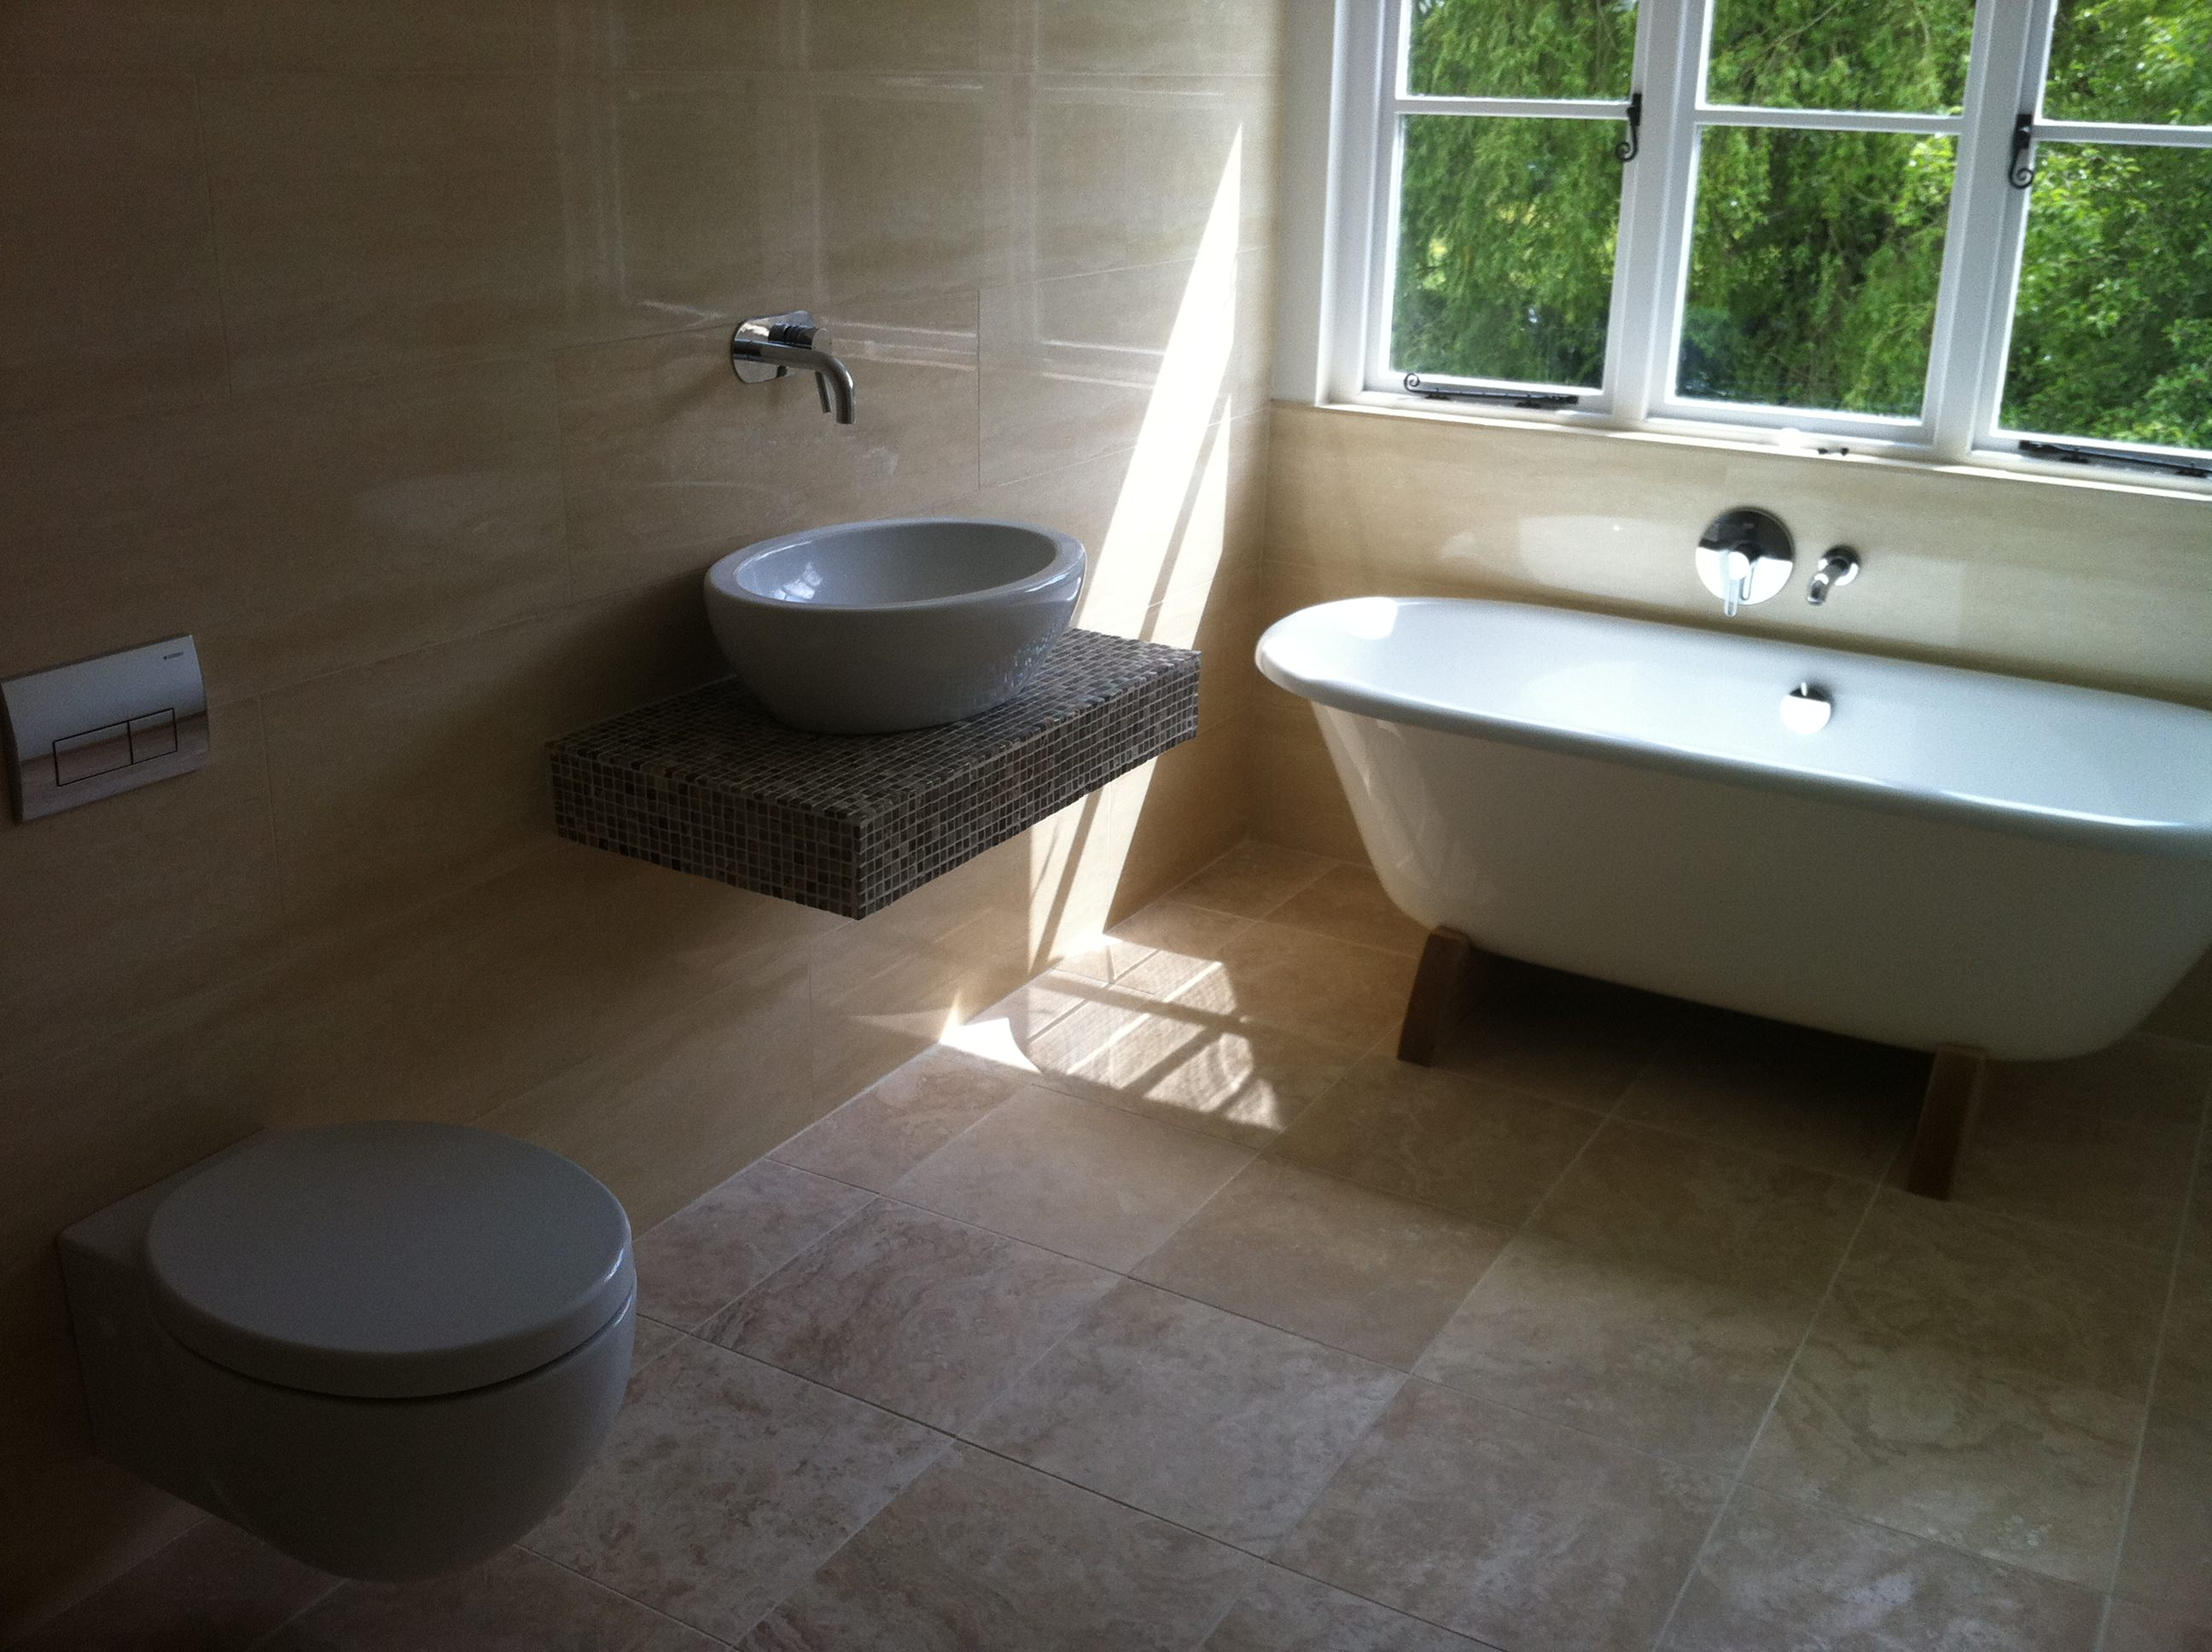 Bathrooms in southampton hampshire Bathroom design jobs southampton